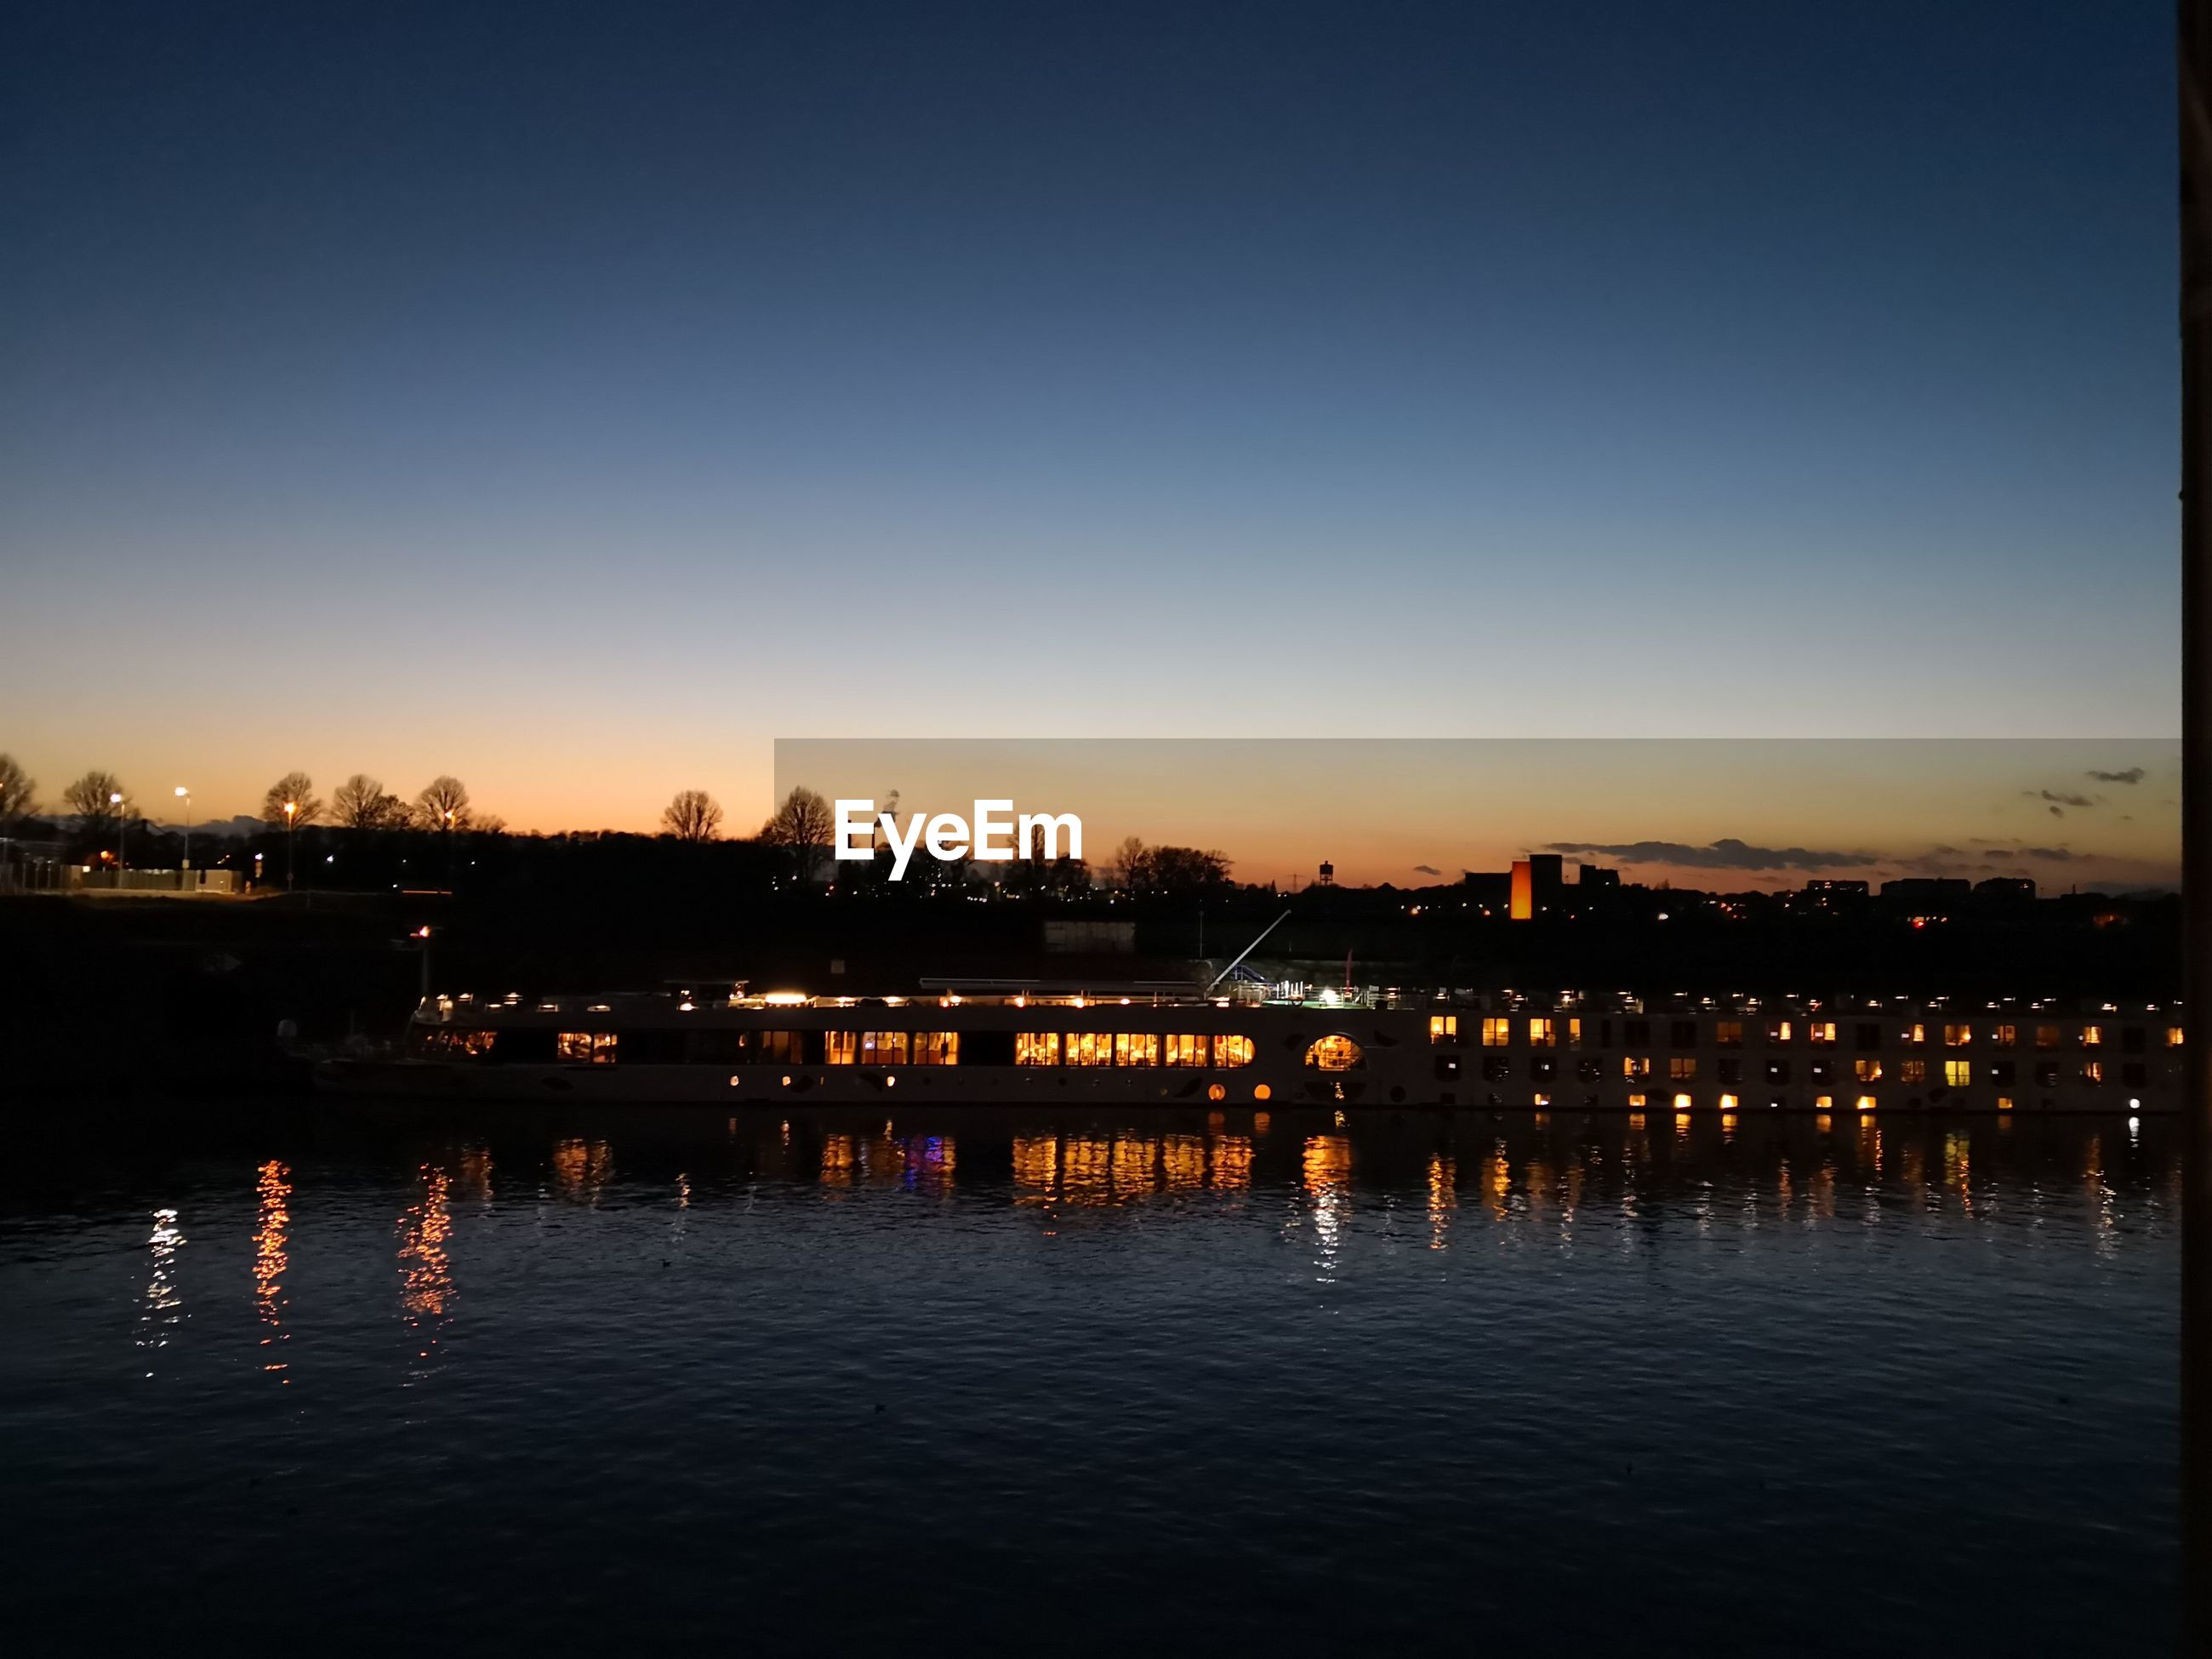 ILLUMINATED CITY BY RIVER AGAINST SKY DURING SUNSET